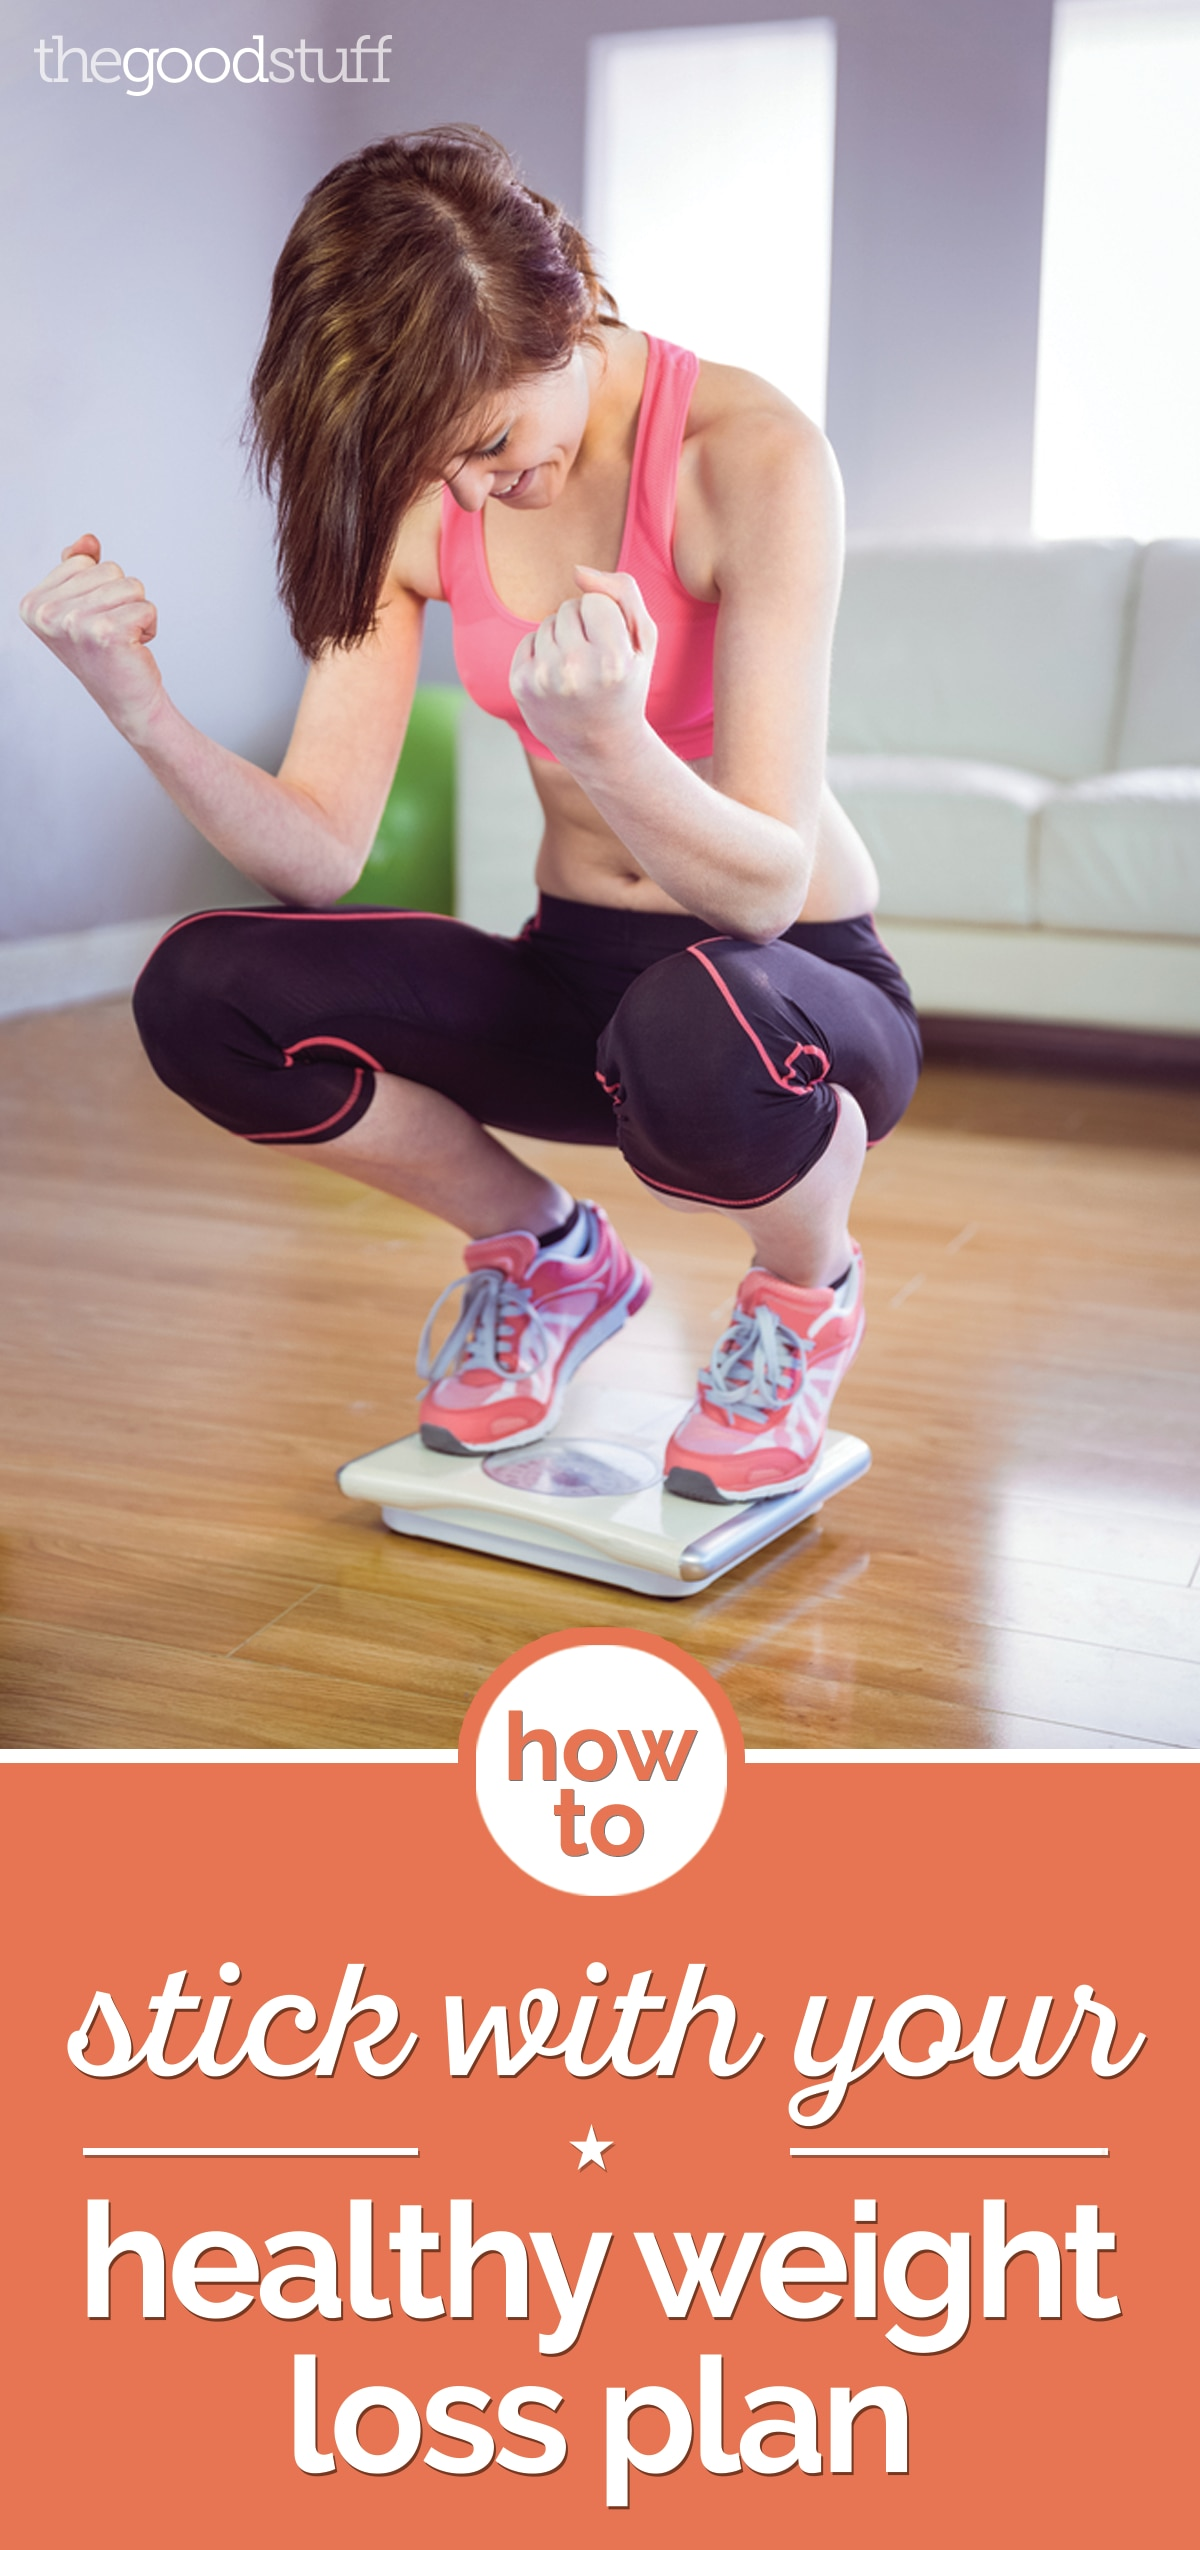 How to Stick With Your Healthy Weight Loss Plan   thegoodstuff